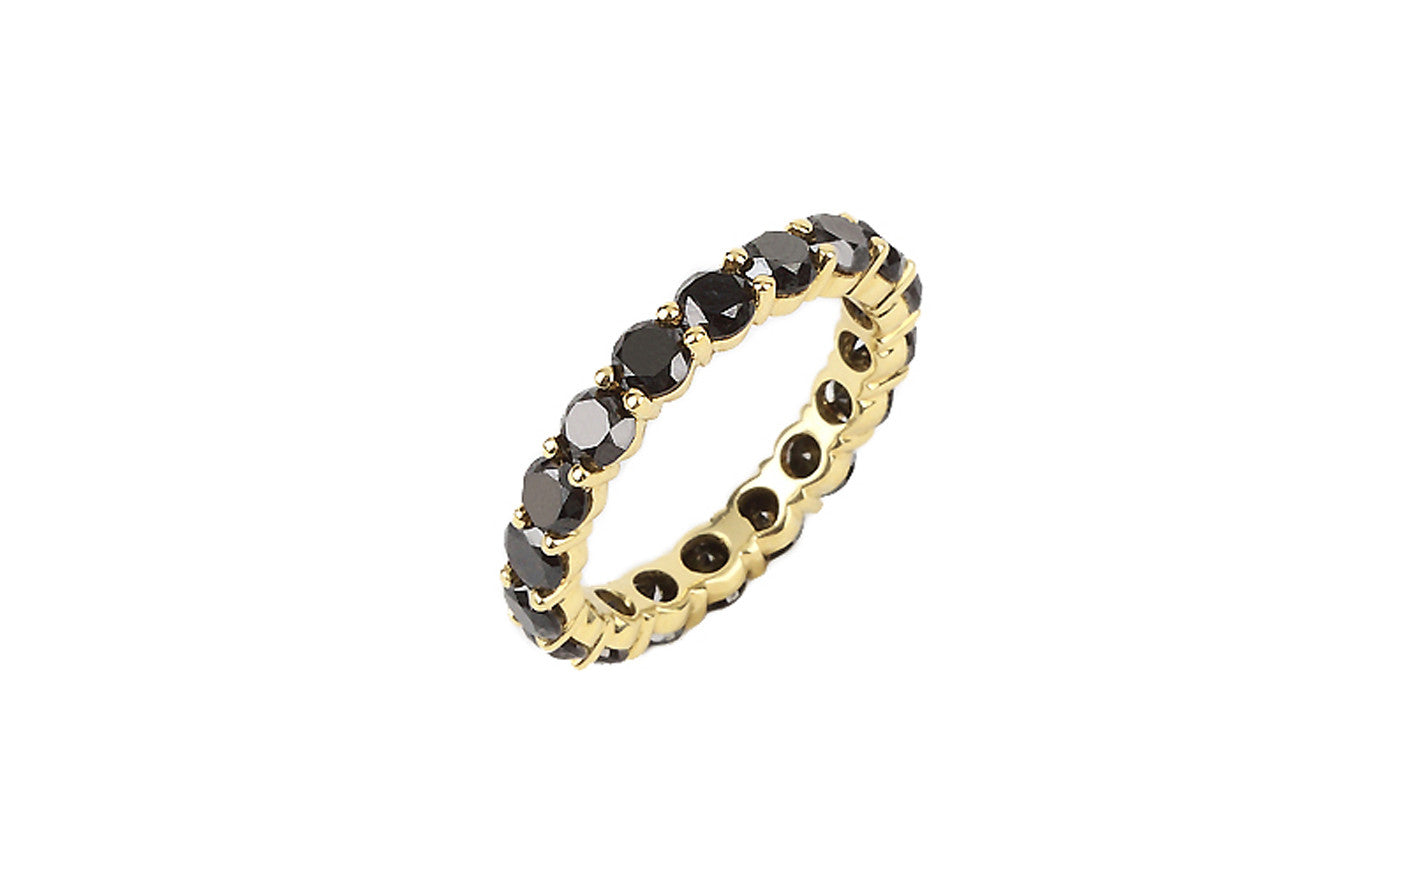 wg fascinating fd nl black row in and diamond jewelry platinum with ring bands ruby eternity band